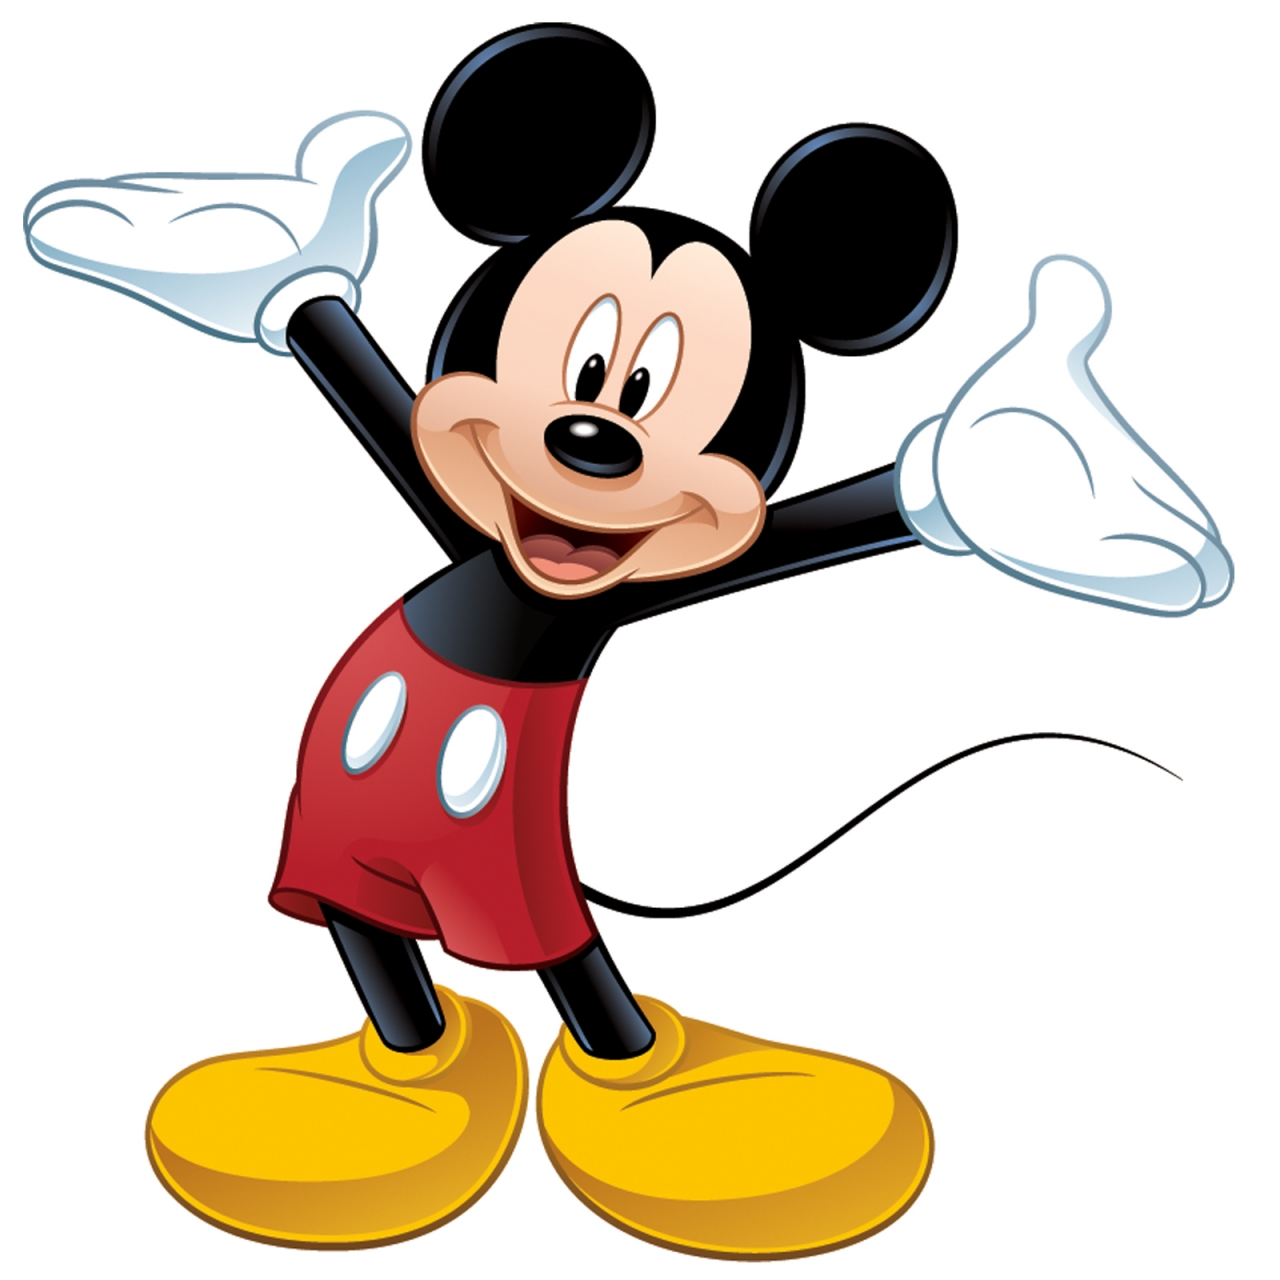 Free Mickey Mouse Cartoons, Download Free Clip Art, Free.